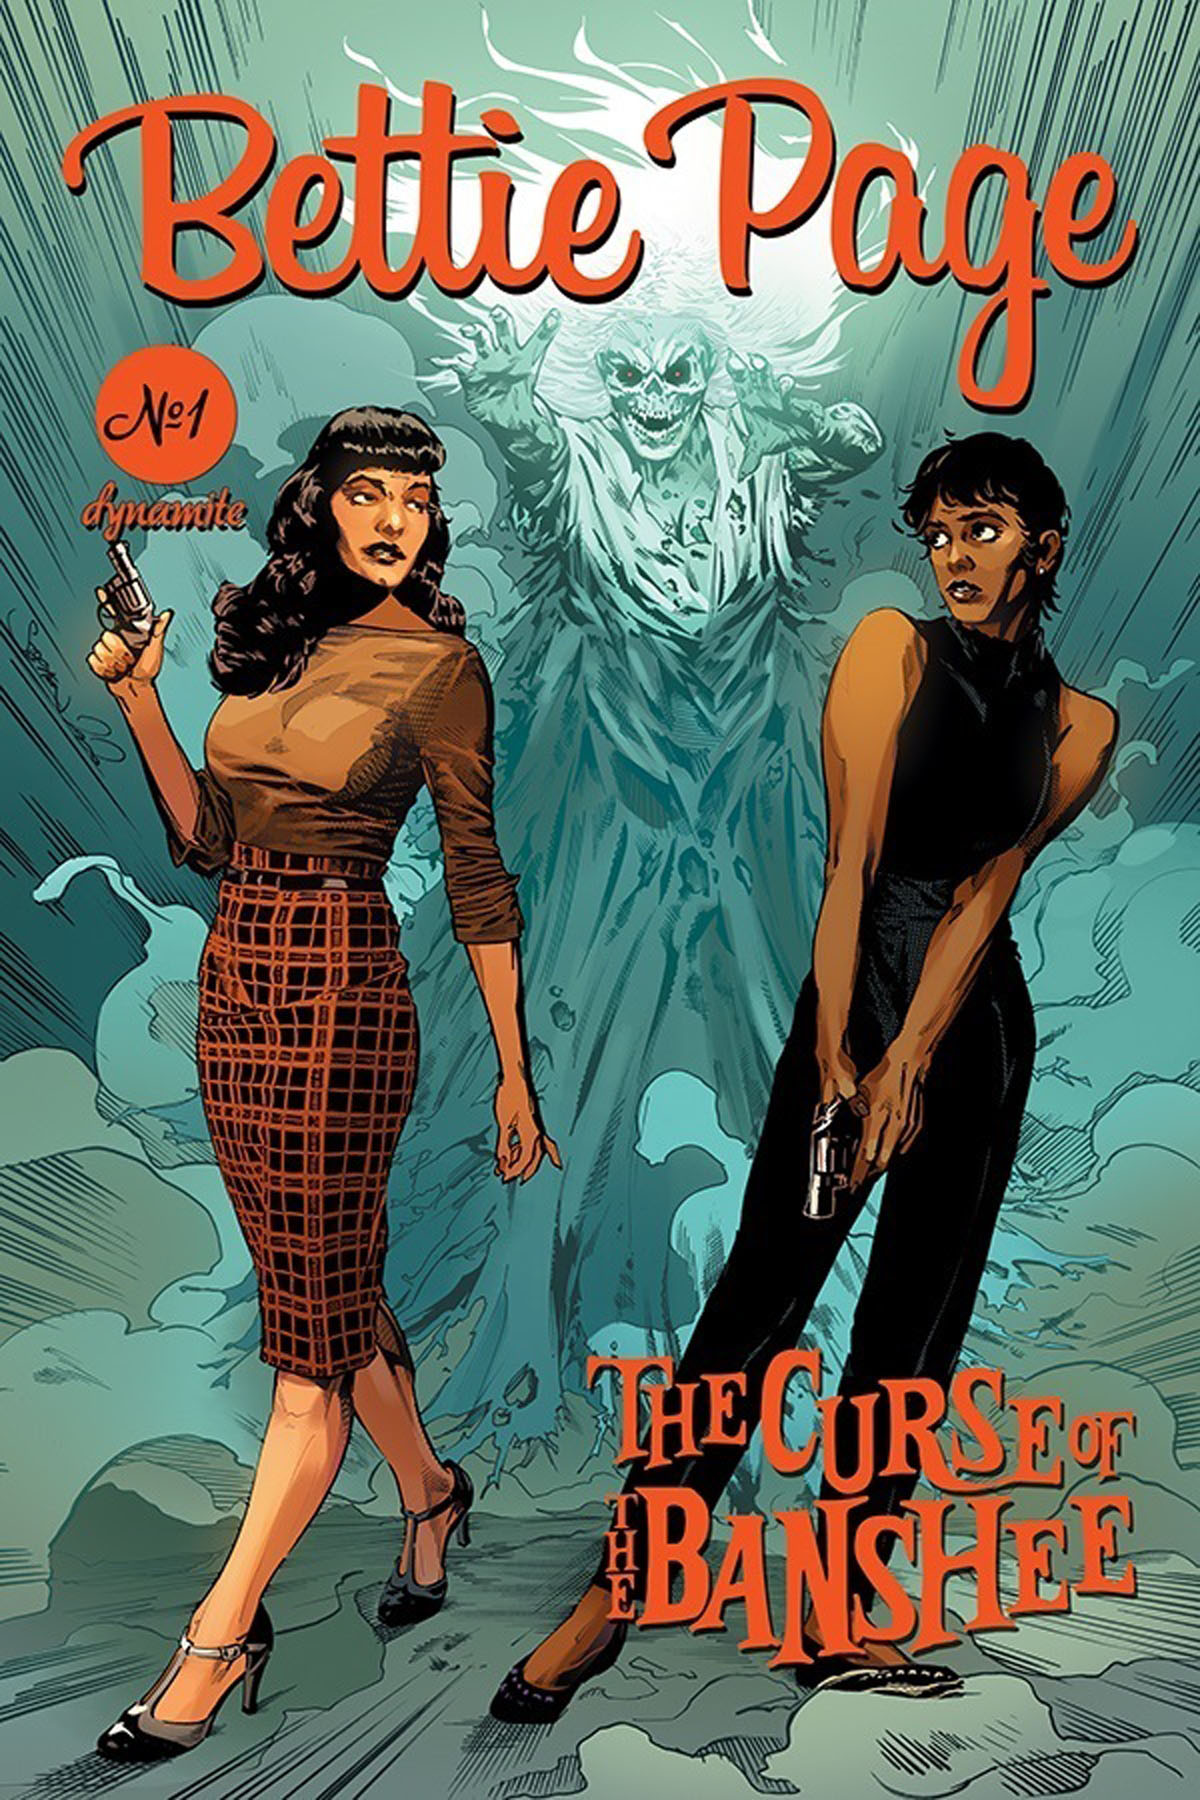 Bettie Page and the Curse of the Banshee #1 cover C by Mooney